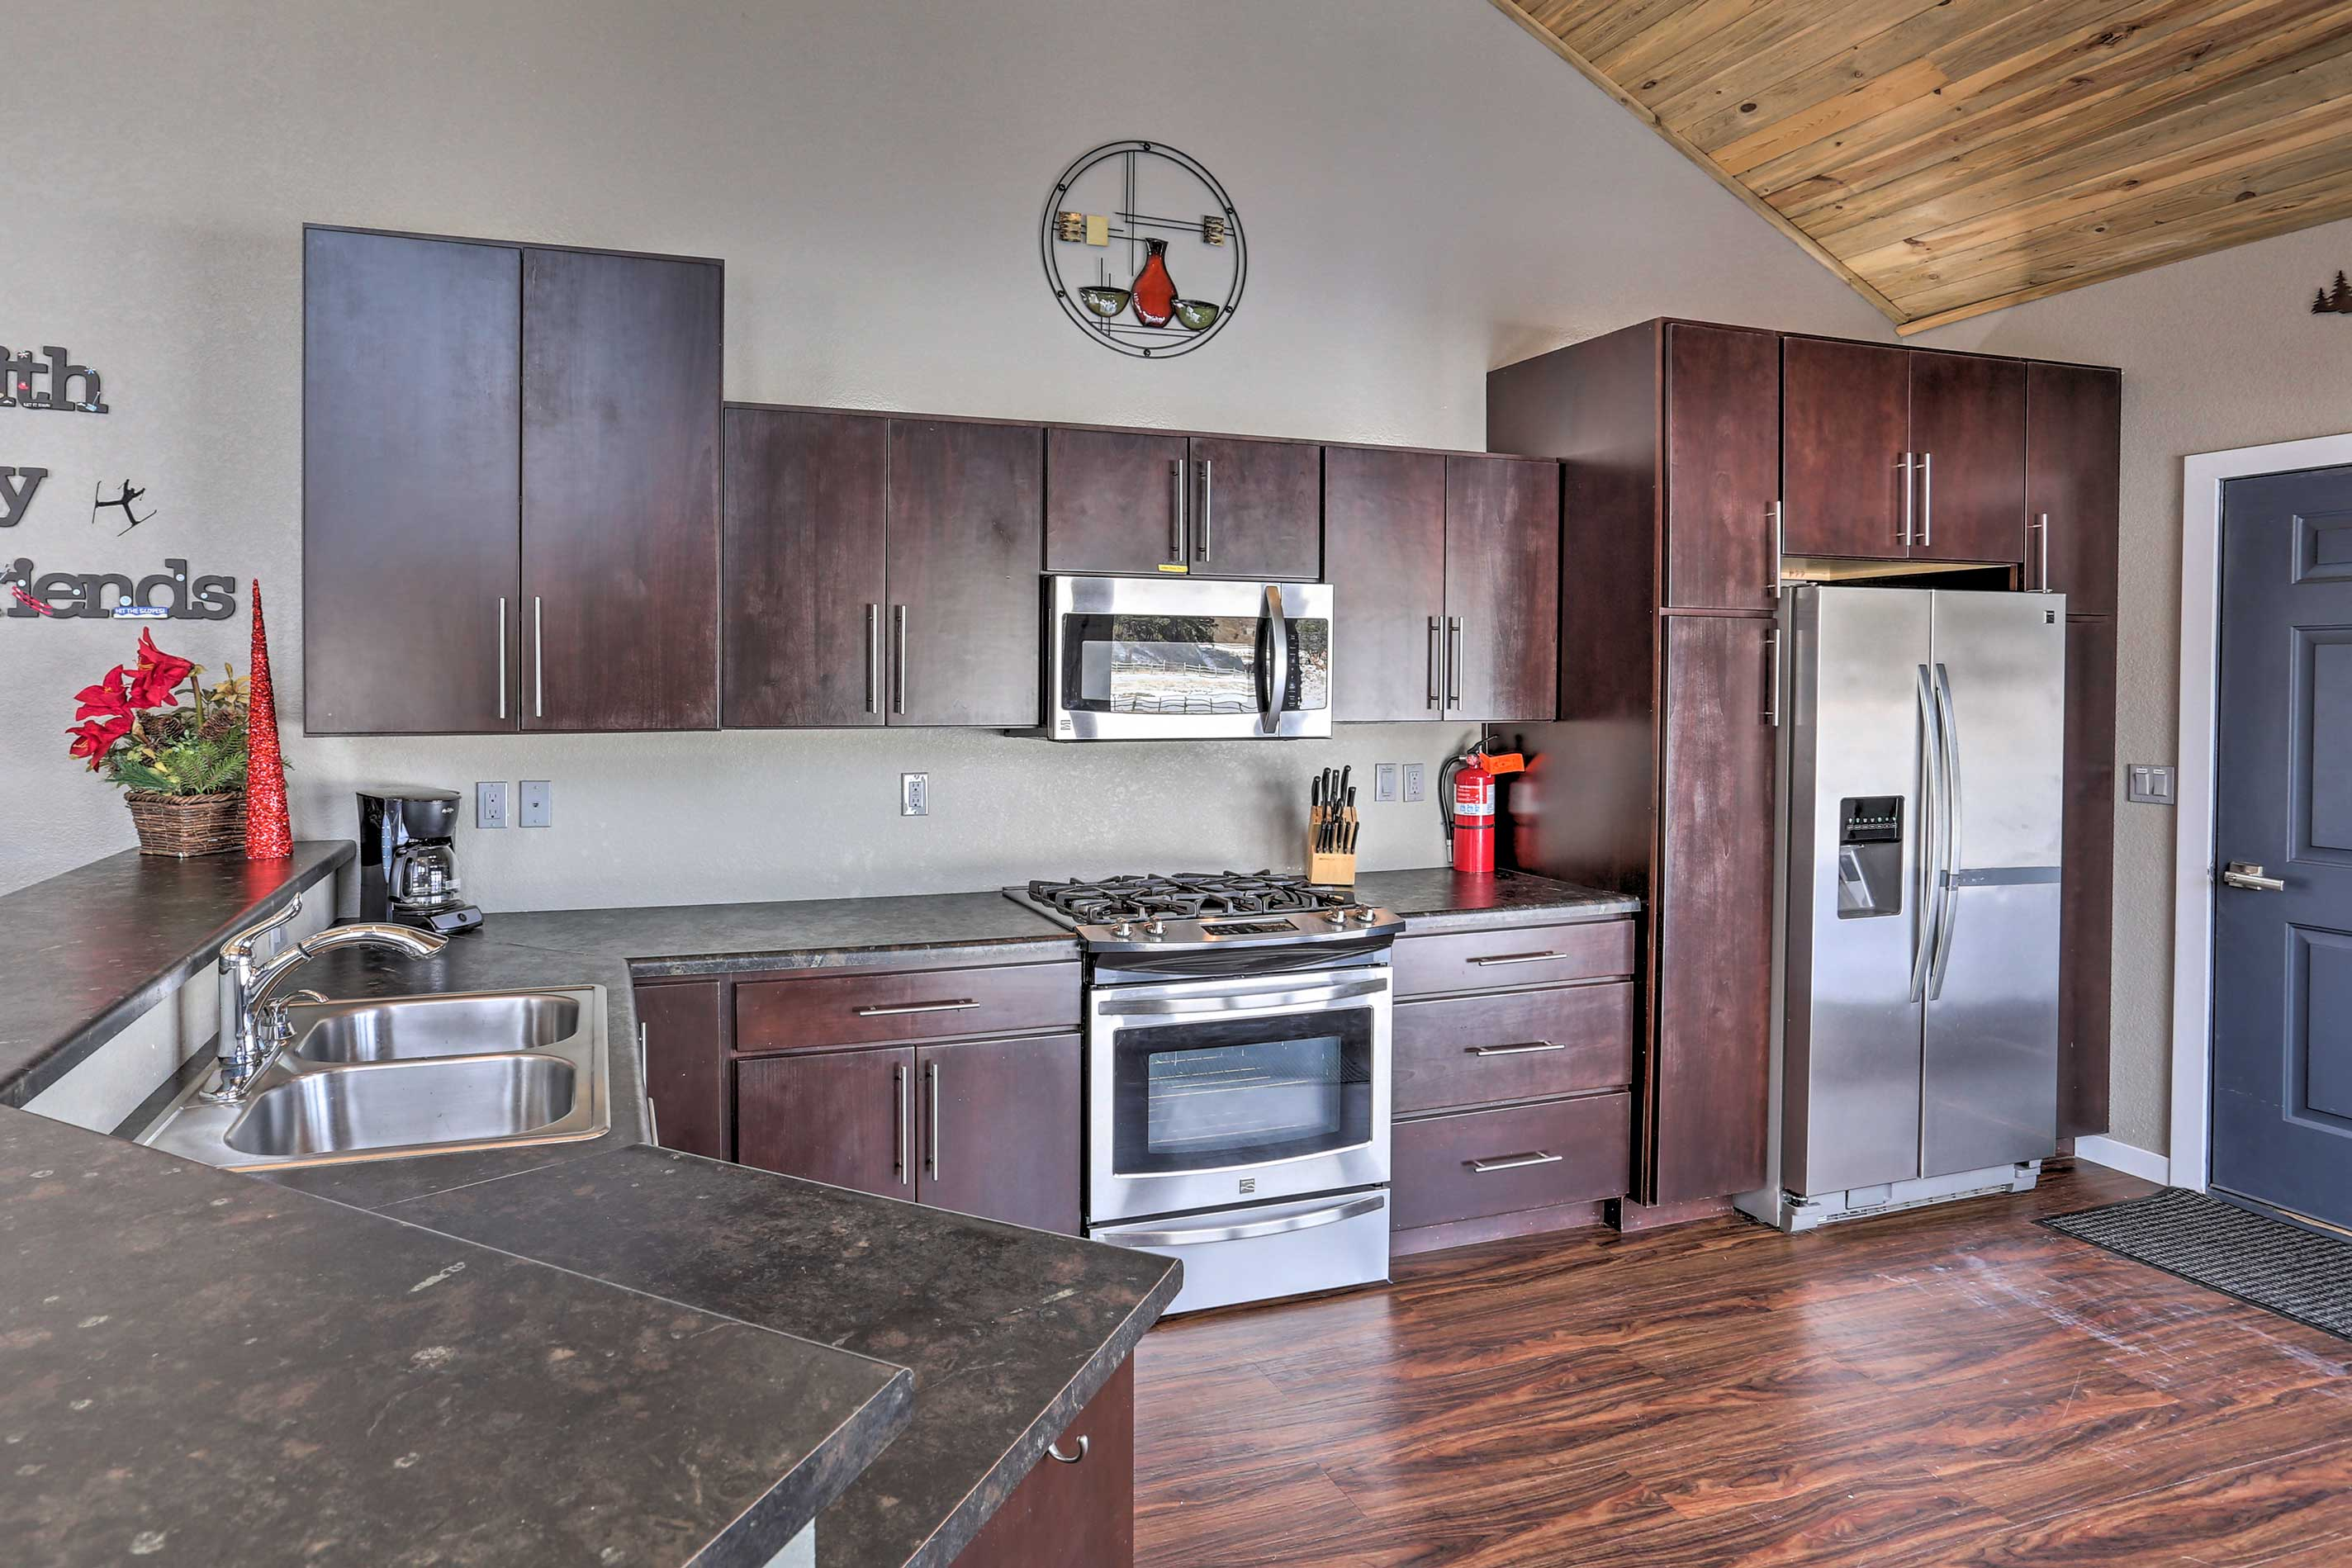 Stainless steel appliances & granite counters can be found in the full kitchen.